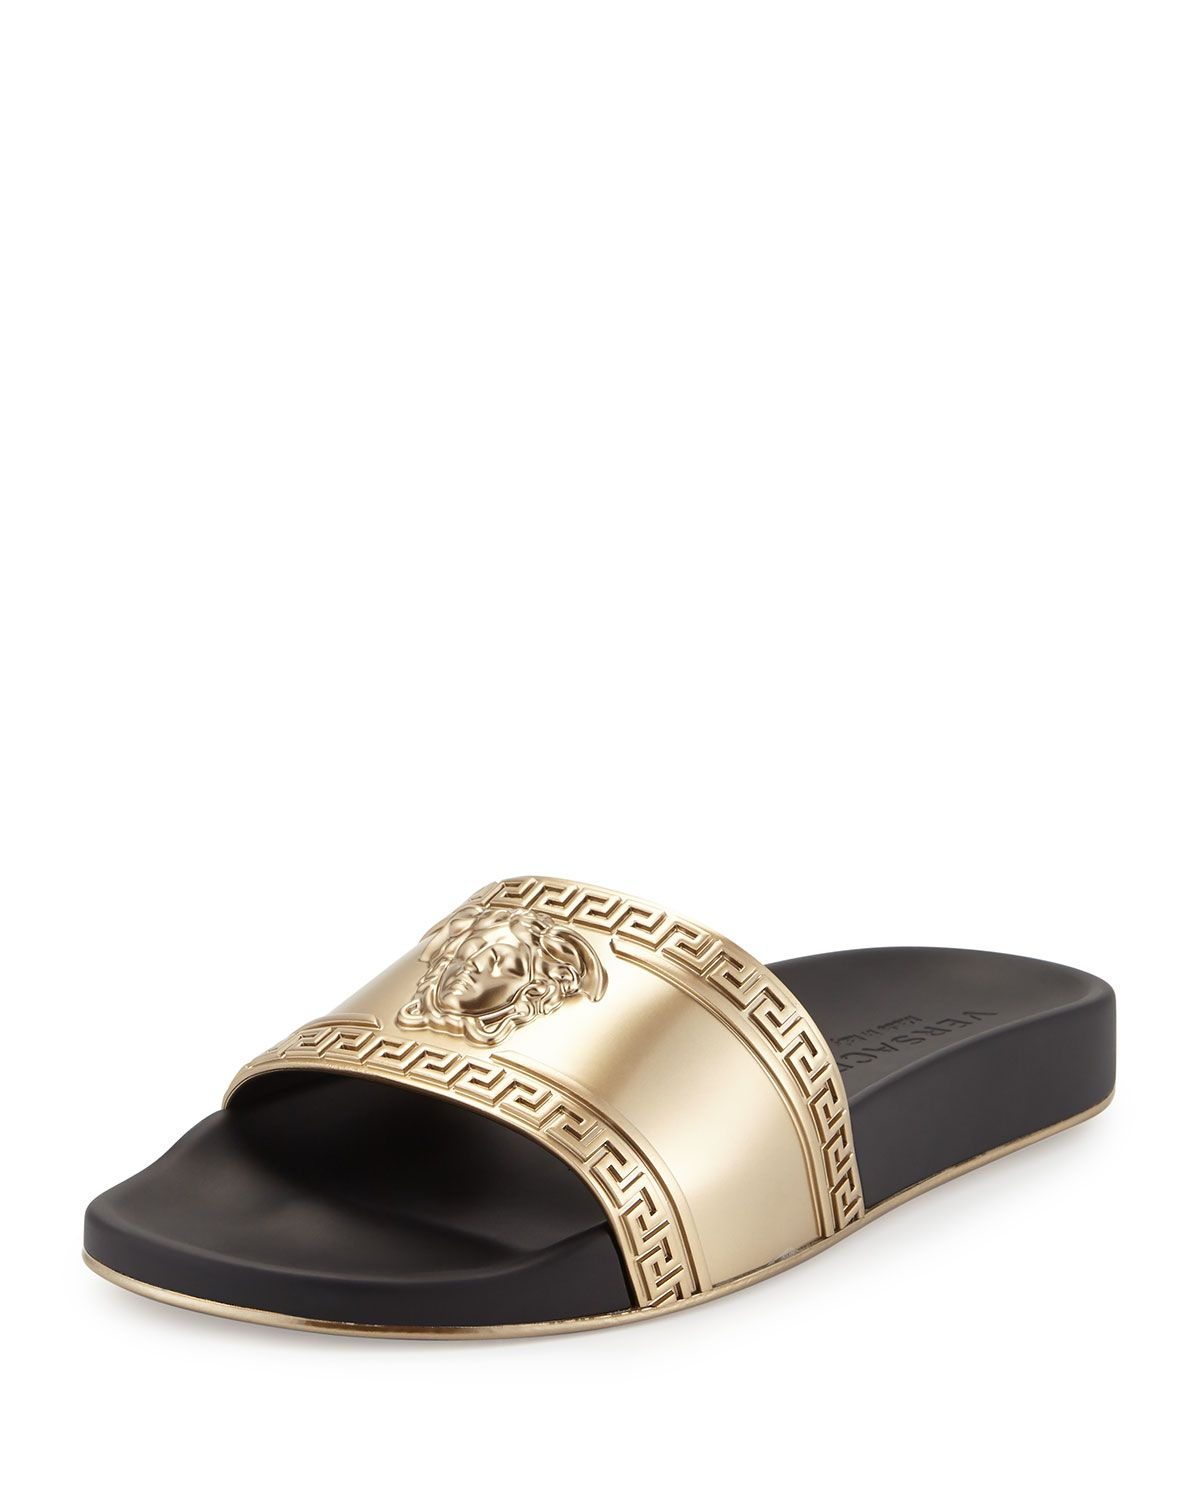 d1dc550322b2 Metallic Medusa-Head Slide Sandal